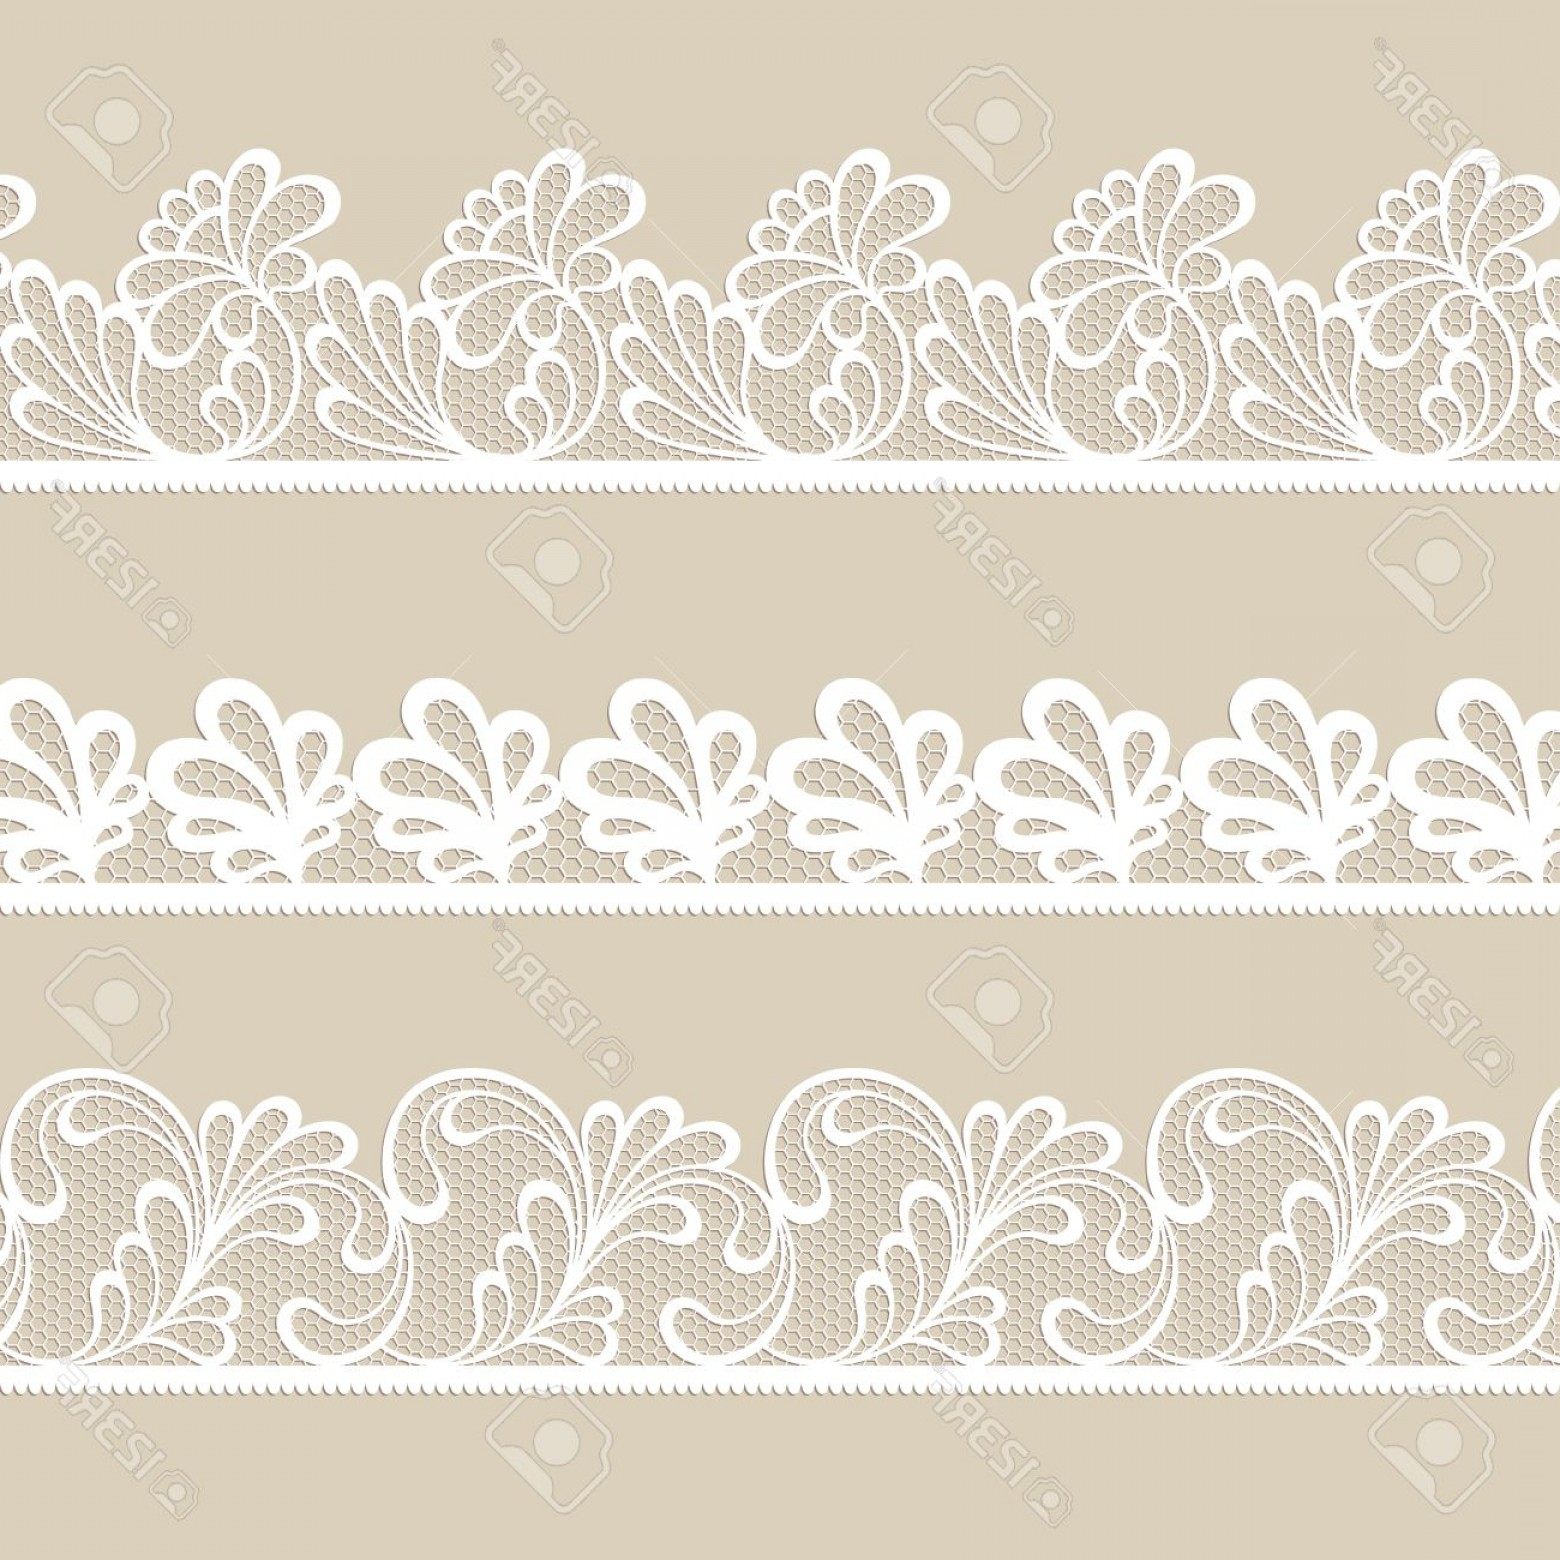 White Lace Vector: Photostock Vector Set Of White Lace Vector Borders